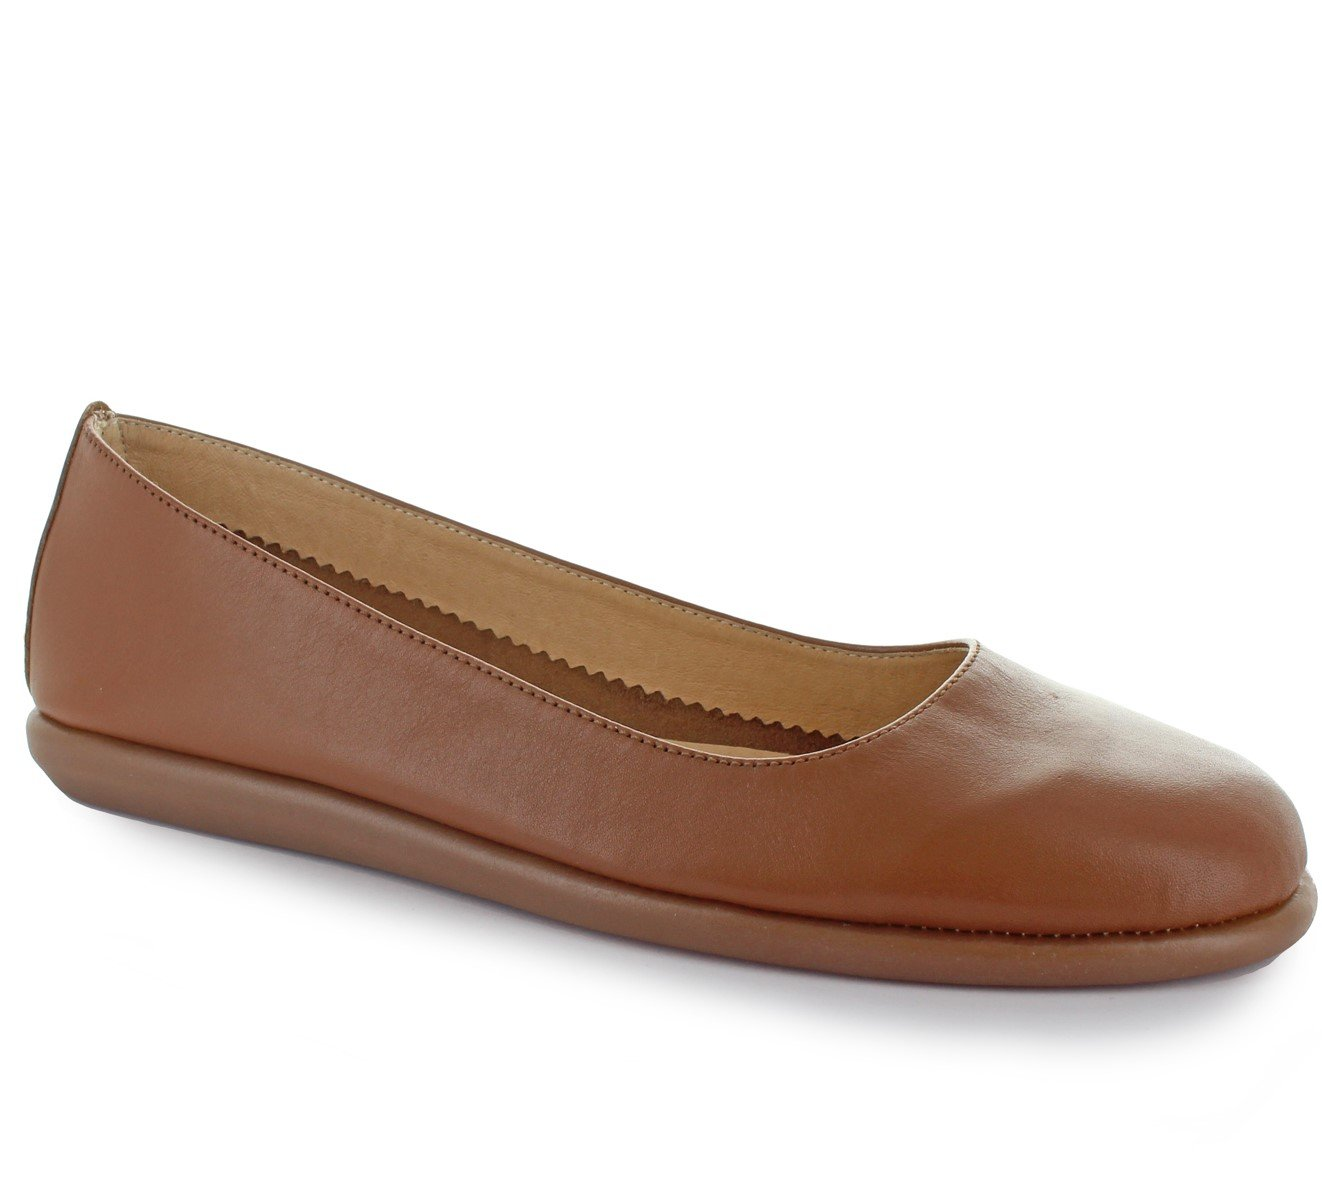 Joan Vass Patricia Womens Nappa Leather Ballet Flat Shoes Tan 39/8.5-9